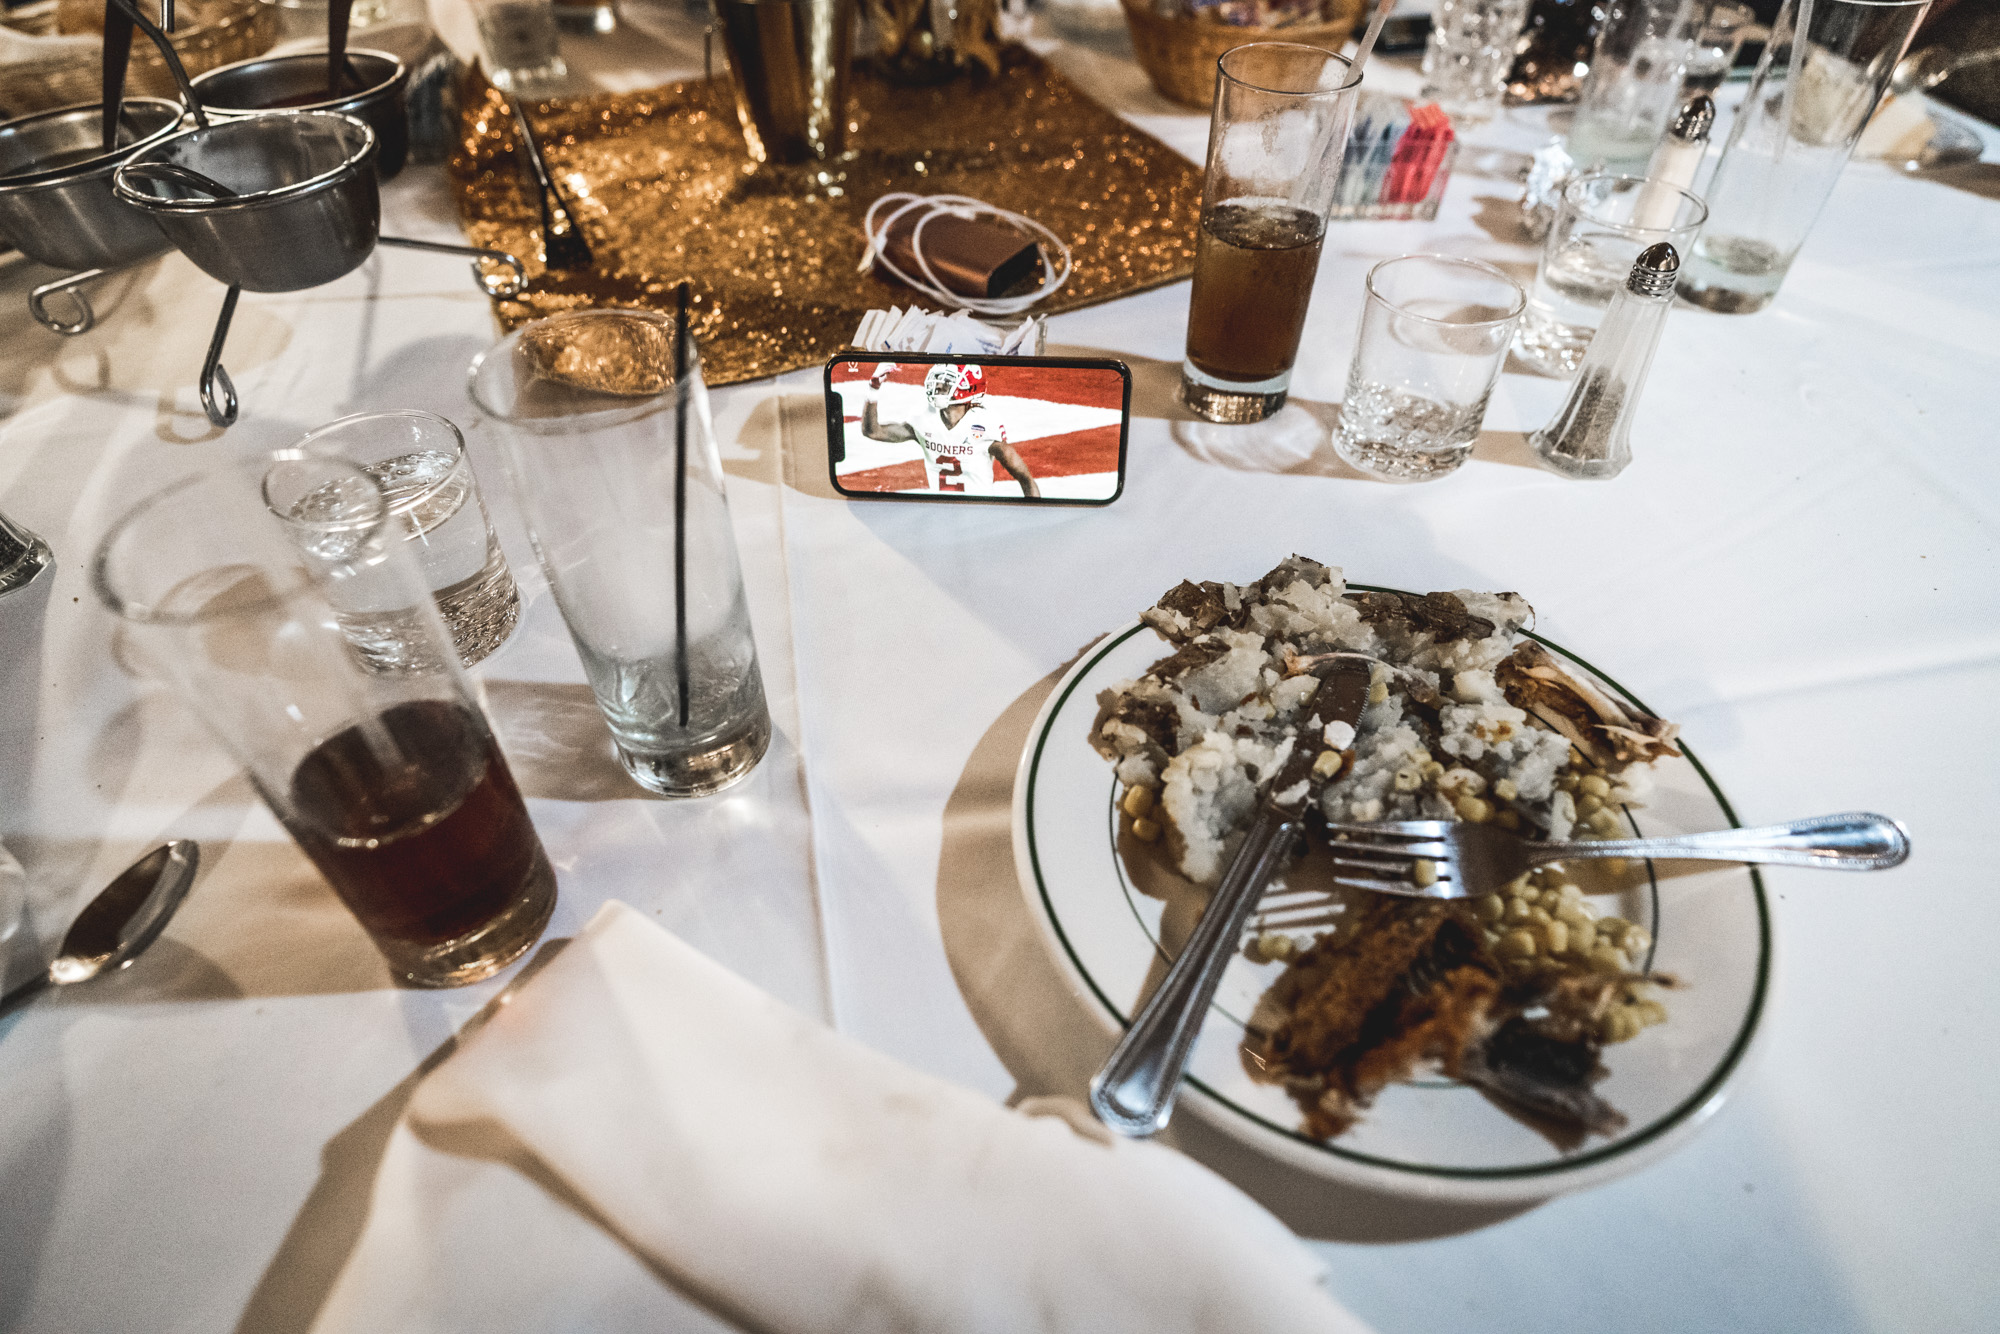 Photo of a table with food on it and a phone propped up with a football game playing on the screen